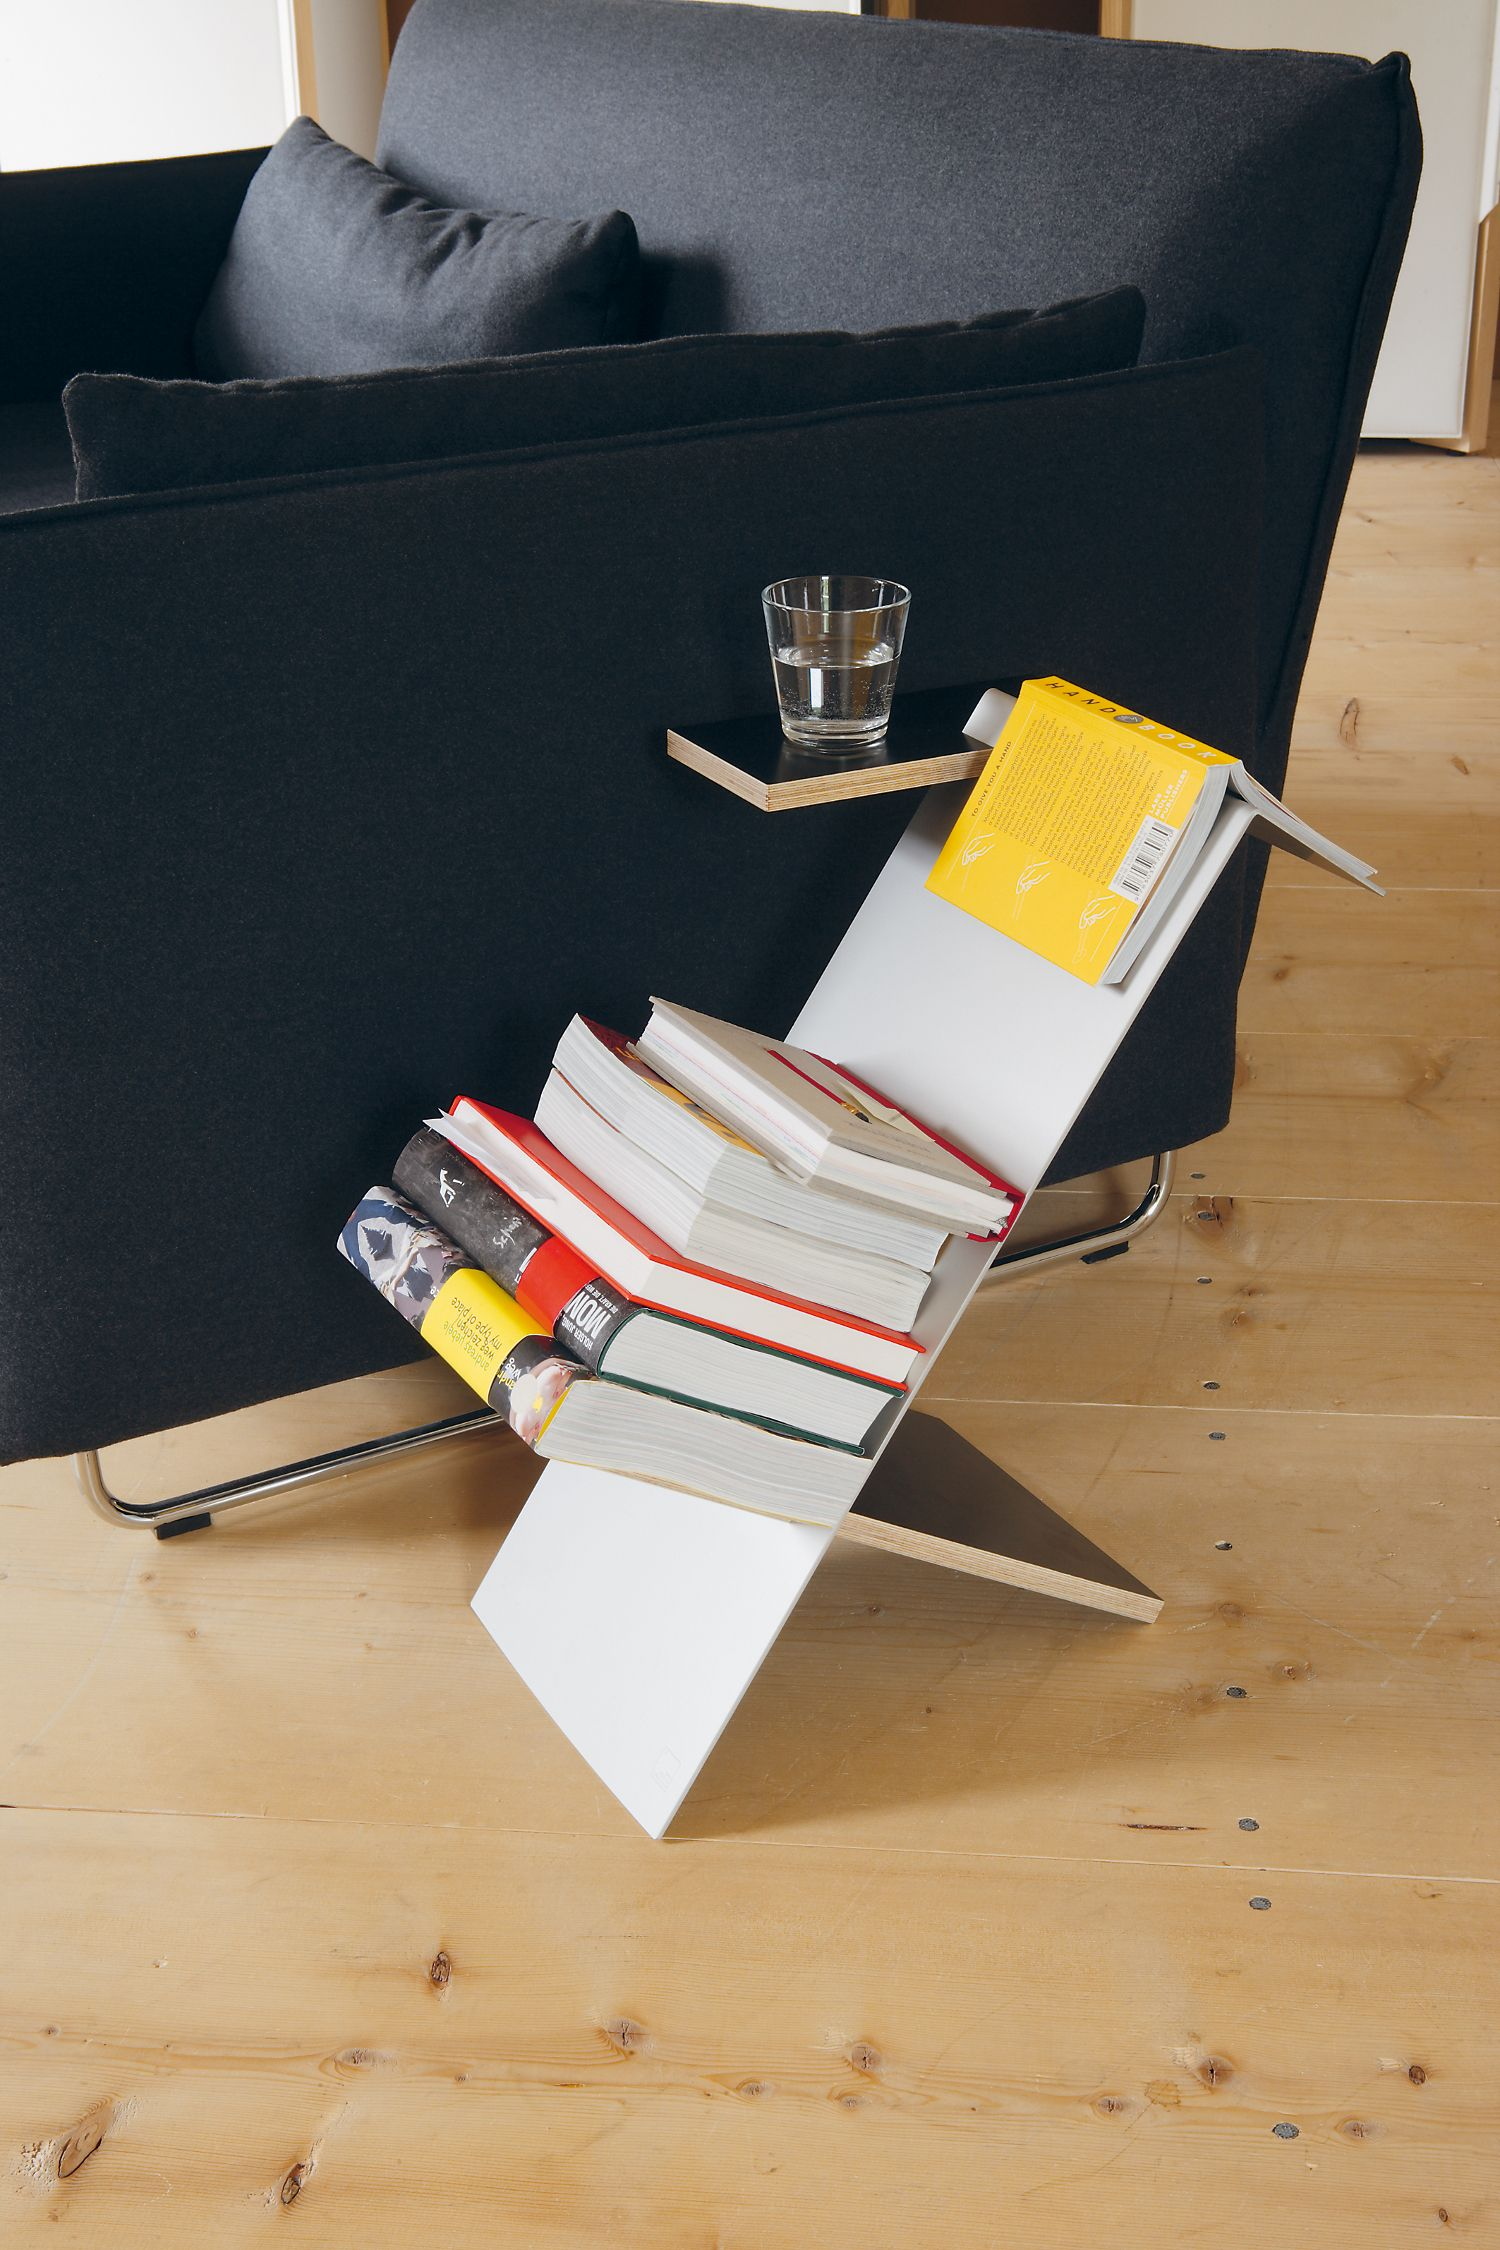 holger moormann the liesmichl book holder allows reading material